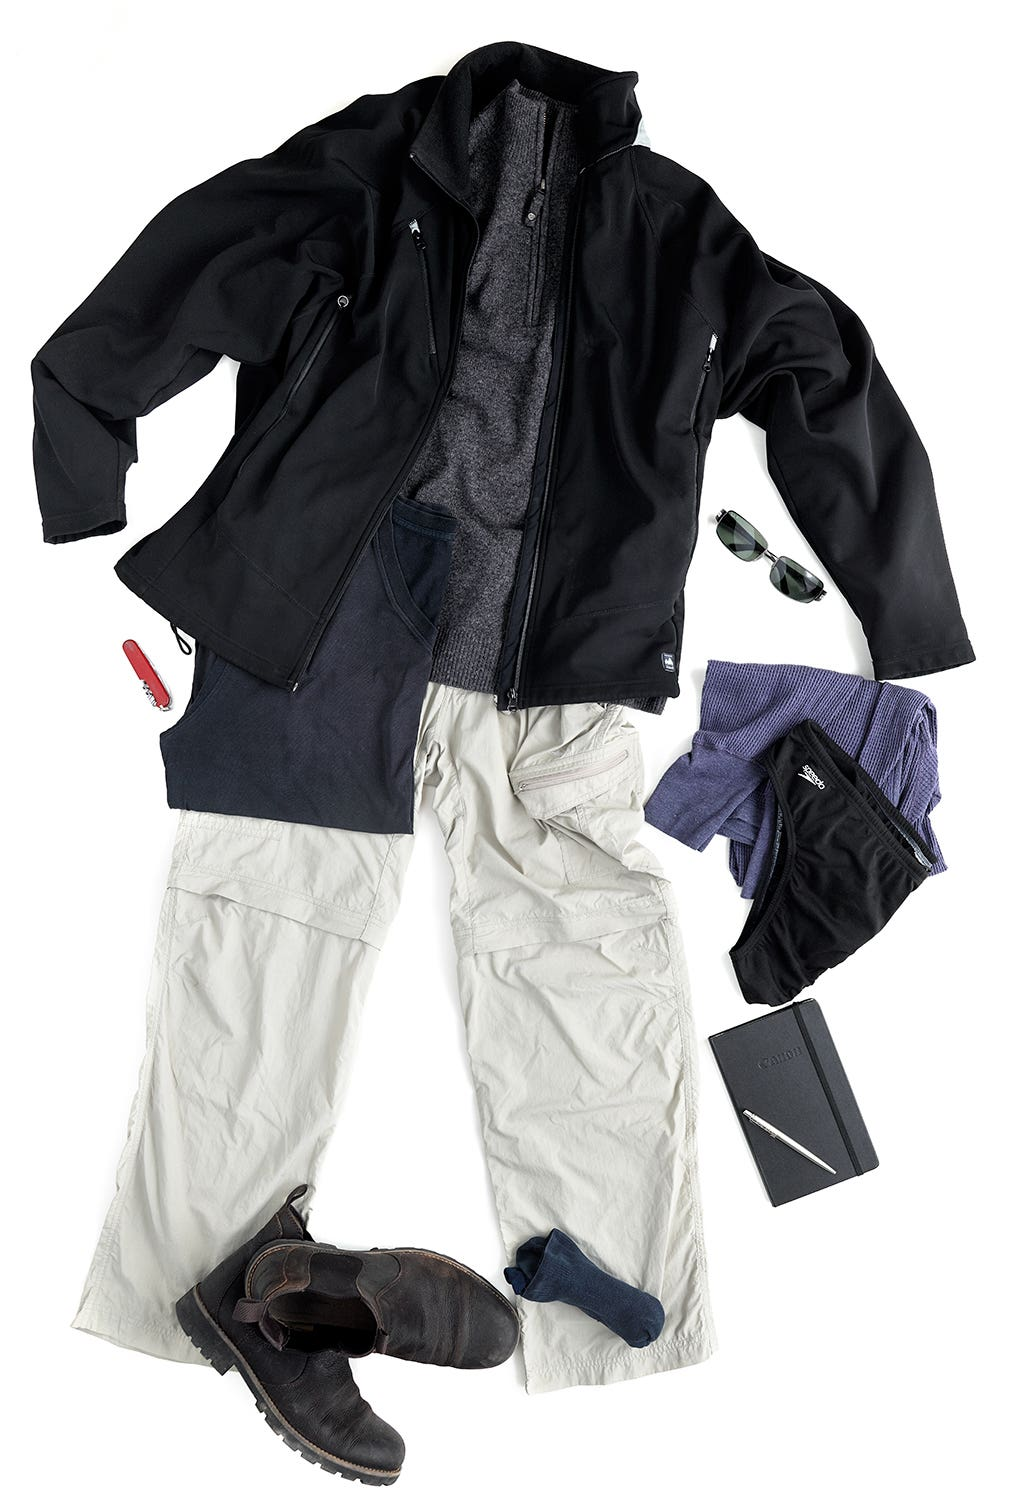 Ric's Travel Clothes (speedos optional)